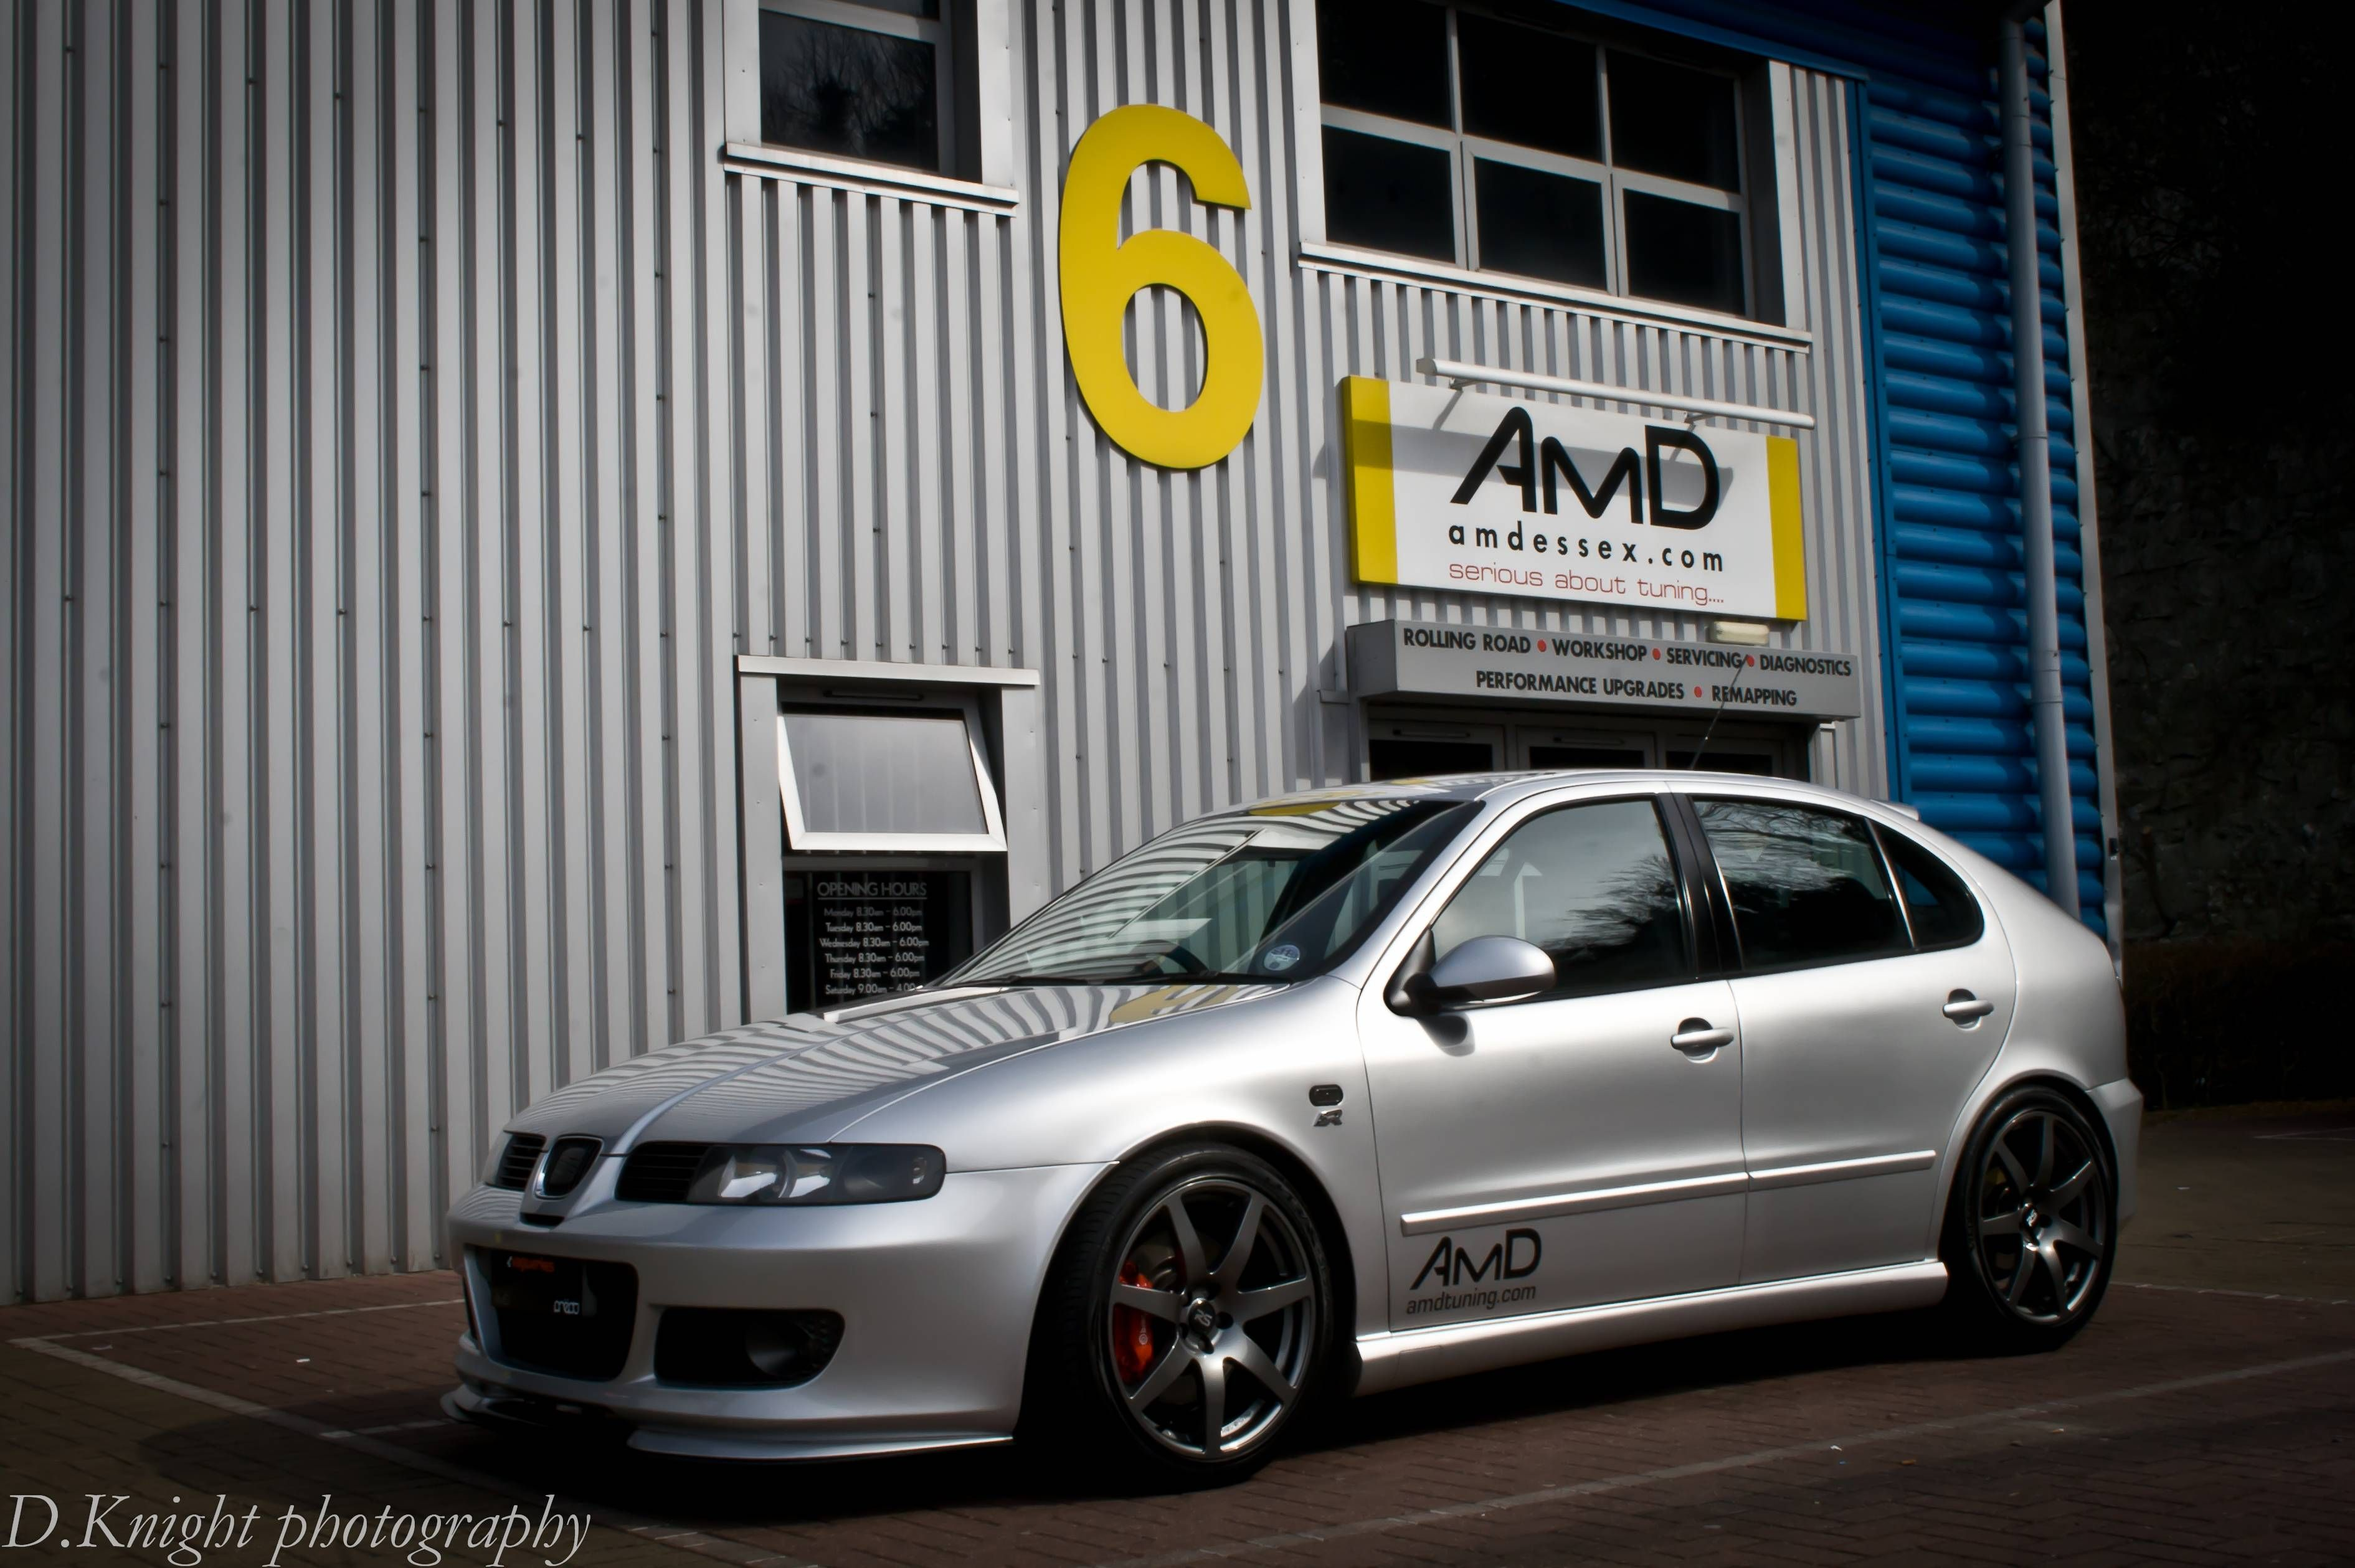 2004 Seat Leon Cupra R 1 8 Turbo Owned By Darren Knight Leon